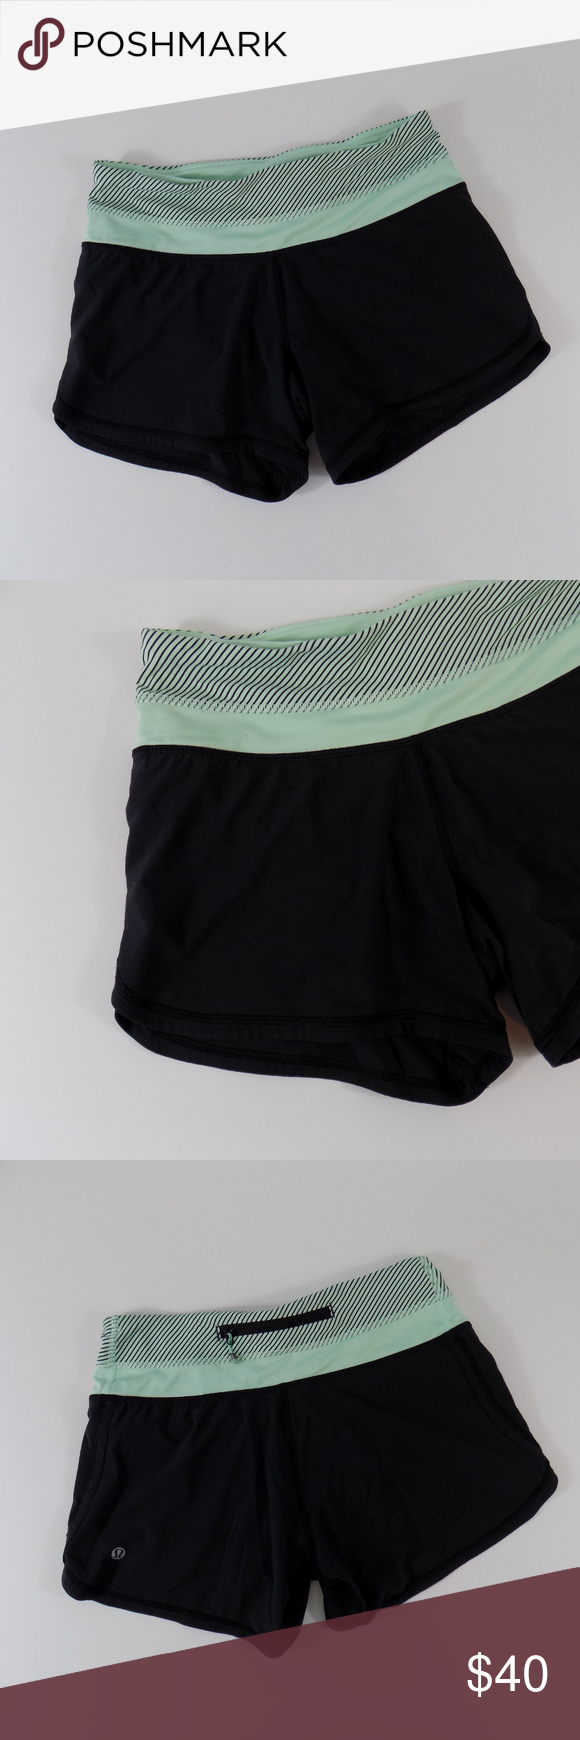 "Lululemon Womens 4"" Running Workout Shorts Lululemon Women"